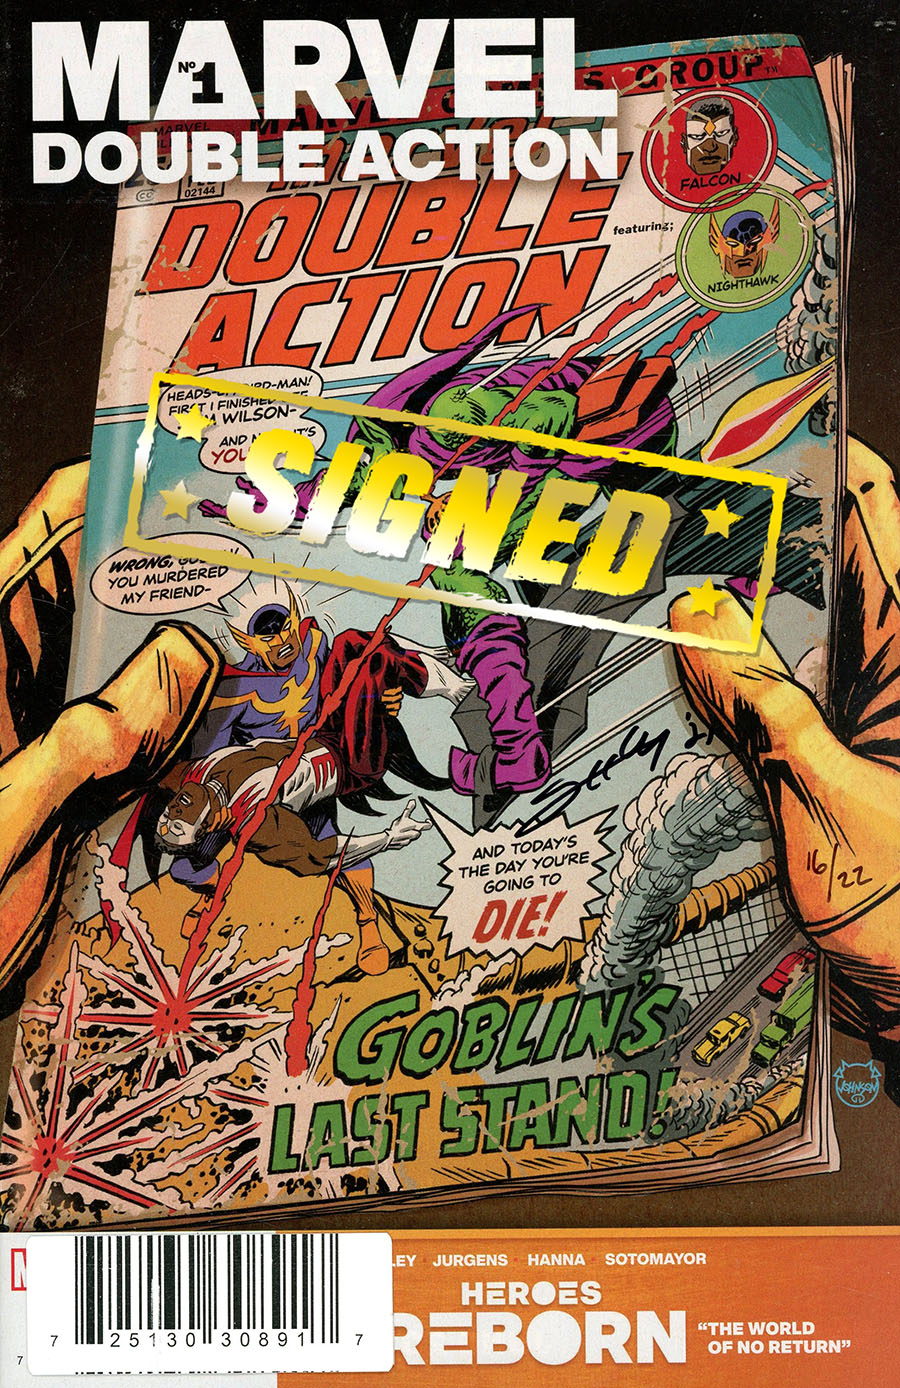 Heroes Reborn Marvel Double Action #1 (One Shot) Cover C DF Signed By Tim Seeley